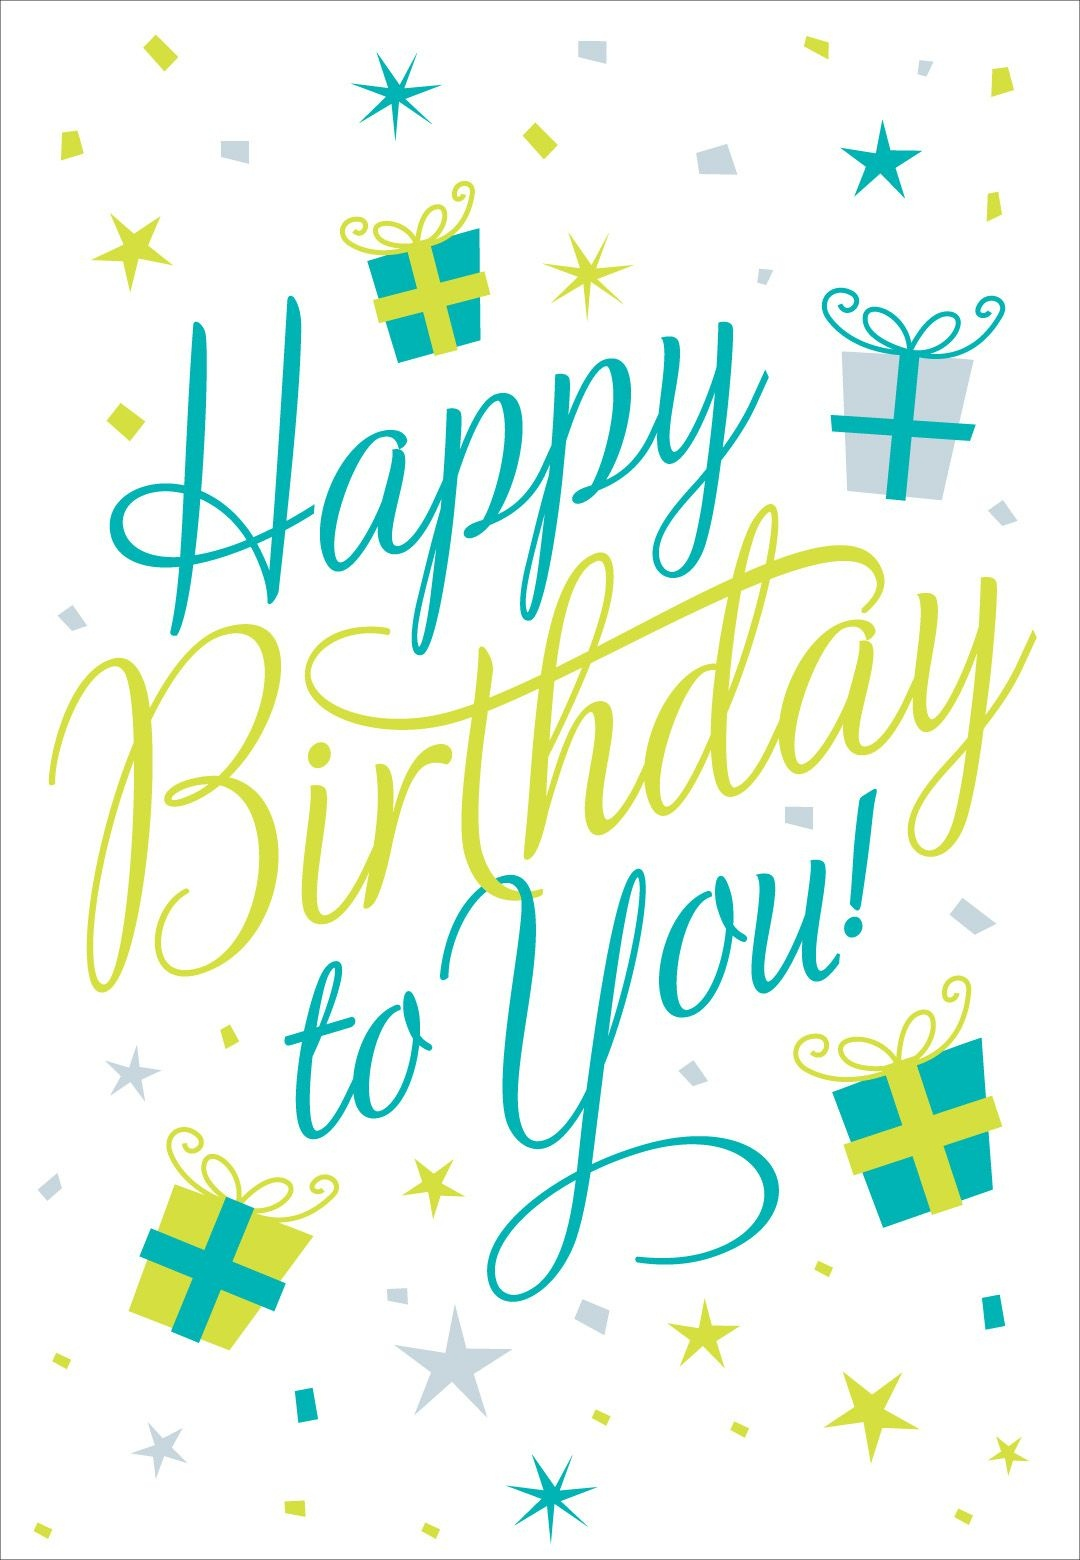 Happy Birthday   Greetings For All Occasions!   Frases De Feliz - Free Printable Greeting Cards For All Occasions